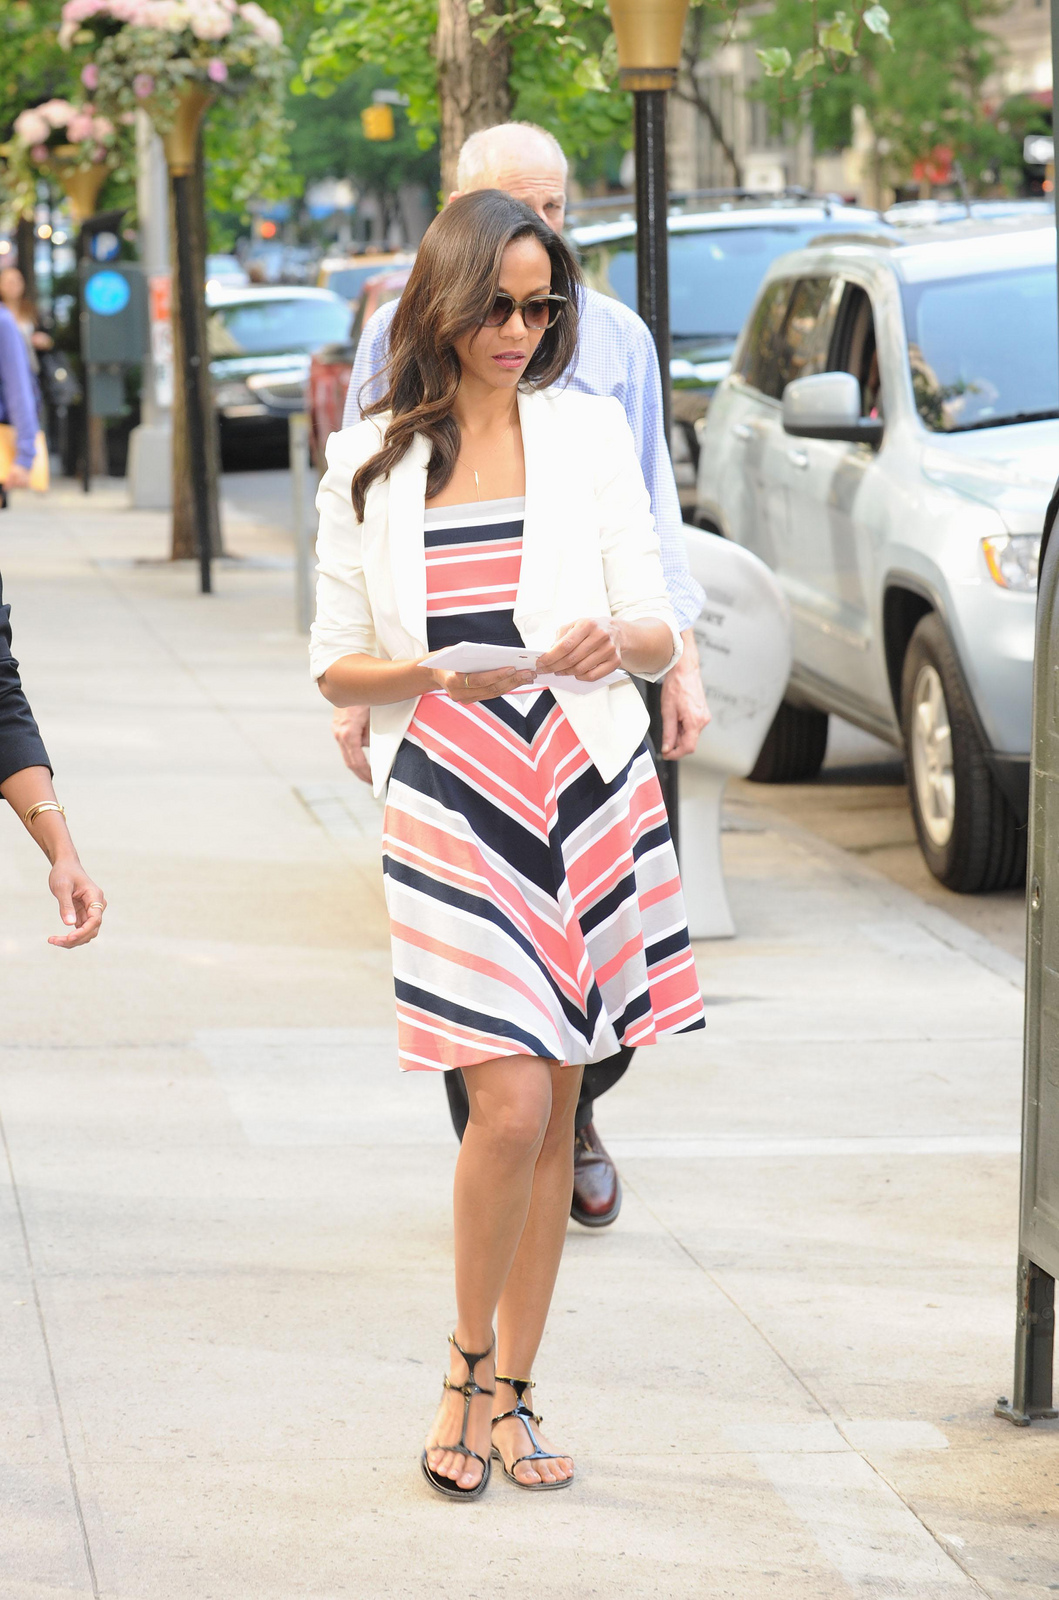 zoe-saldana-new-york-city-banana-republic-milly-collection-coral-multi-stripe-fit-and-flare-dress-2.jpg